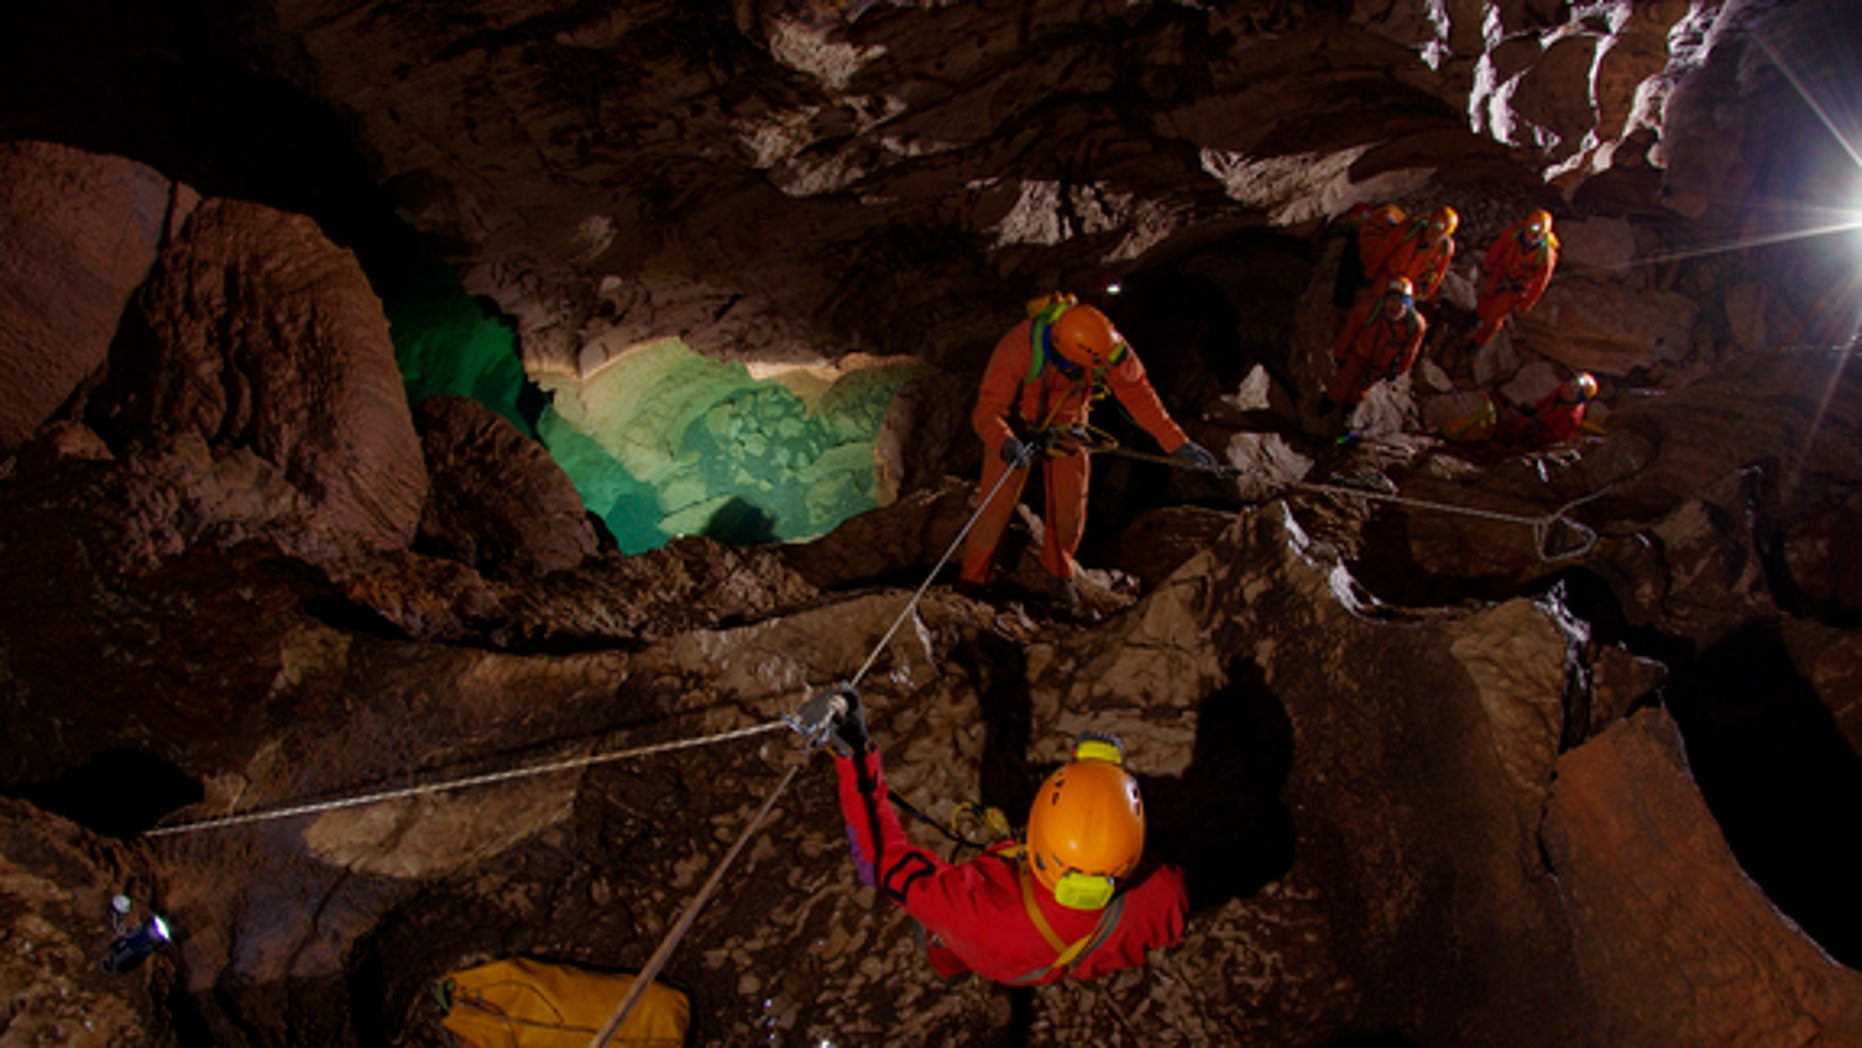 """Astronauts go on a """"cavewalk"""" during the European Space Agency's CAVES project.  Moving in a cave is similar to a spacewalk, ESA officials say; it requires safety tethering and 3D orientation, with no-touch areas and dangerous, off-limits zones"""